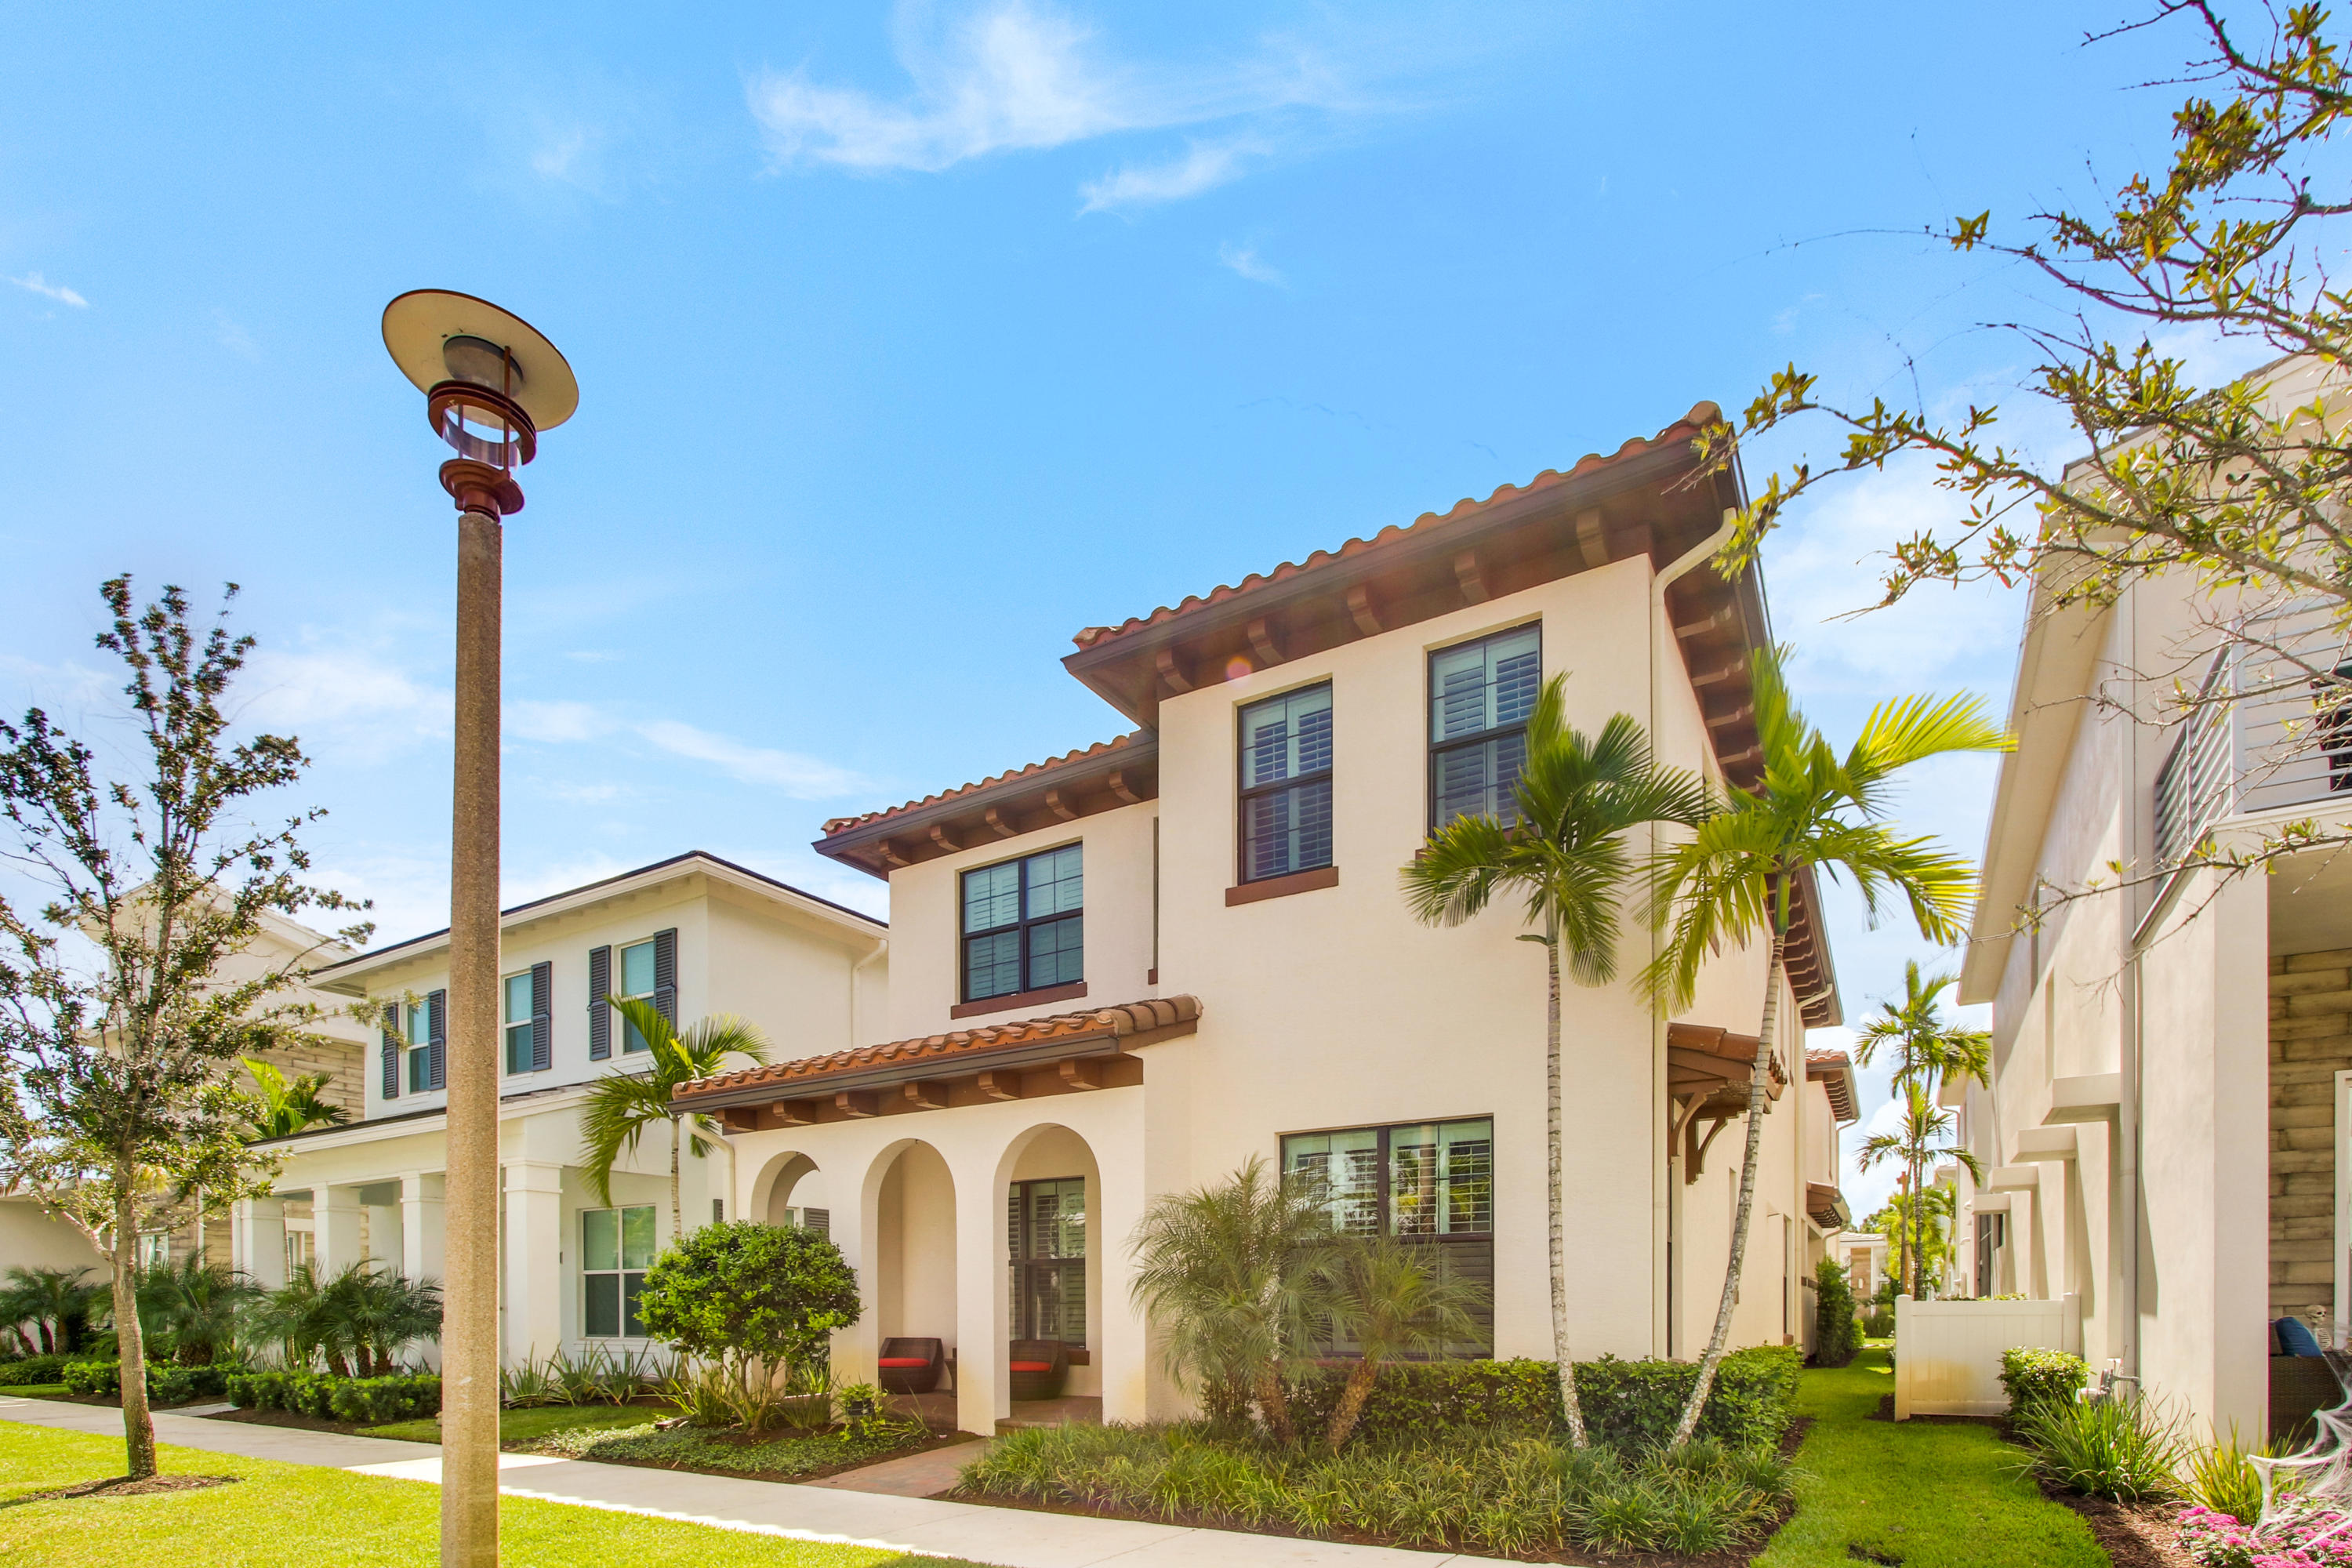 New Home for sale at 4009 Faraday Way in Palm Beach Gardens